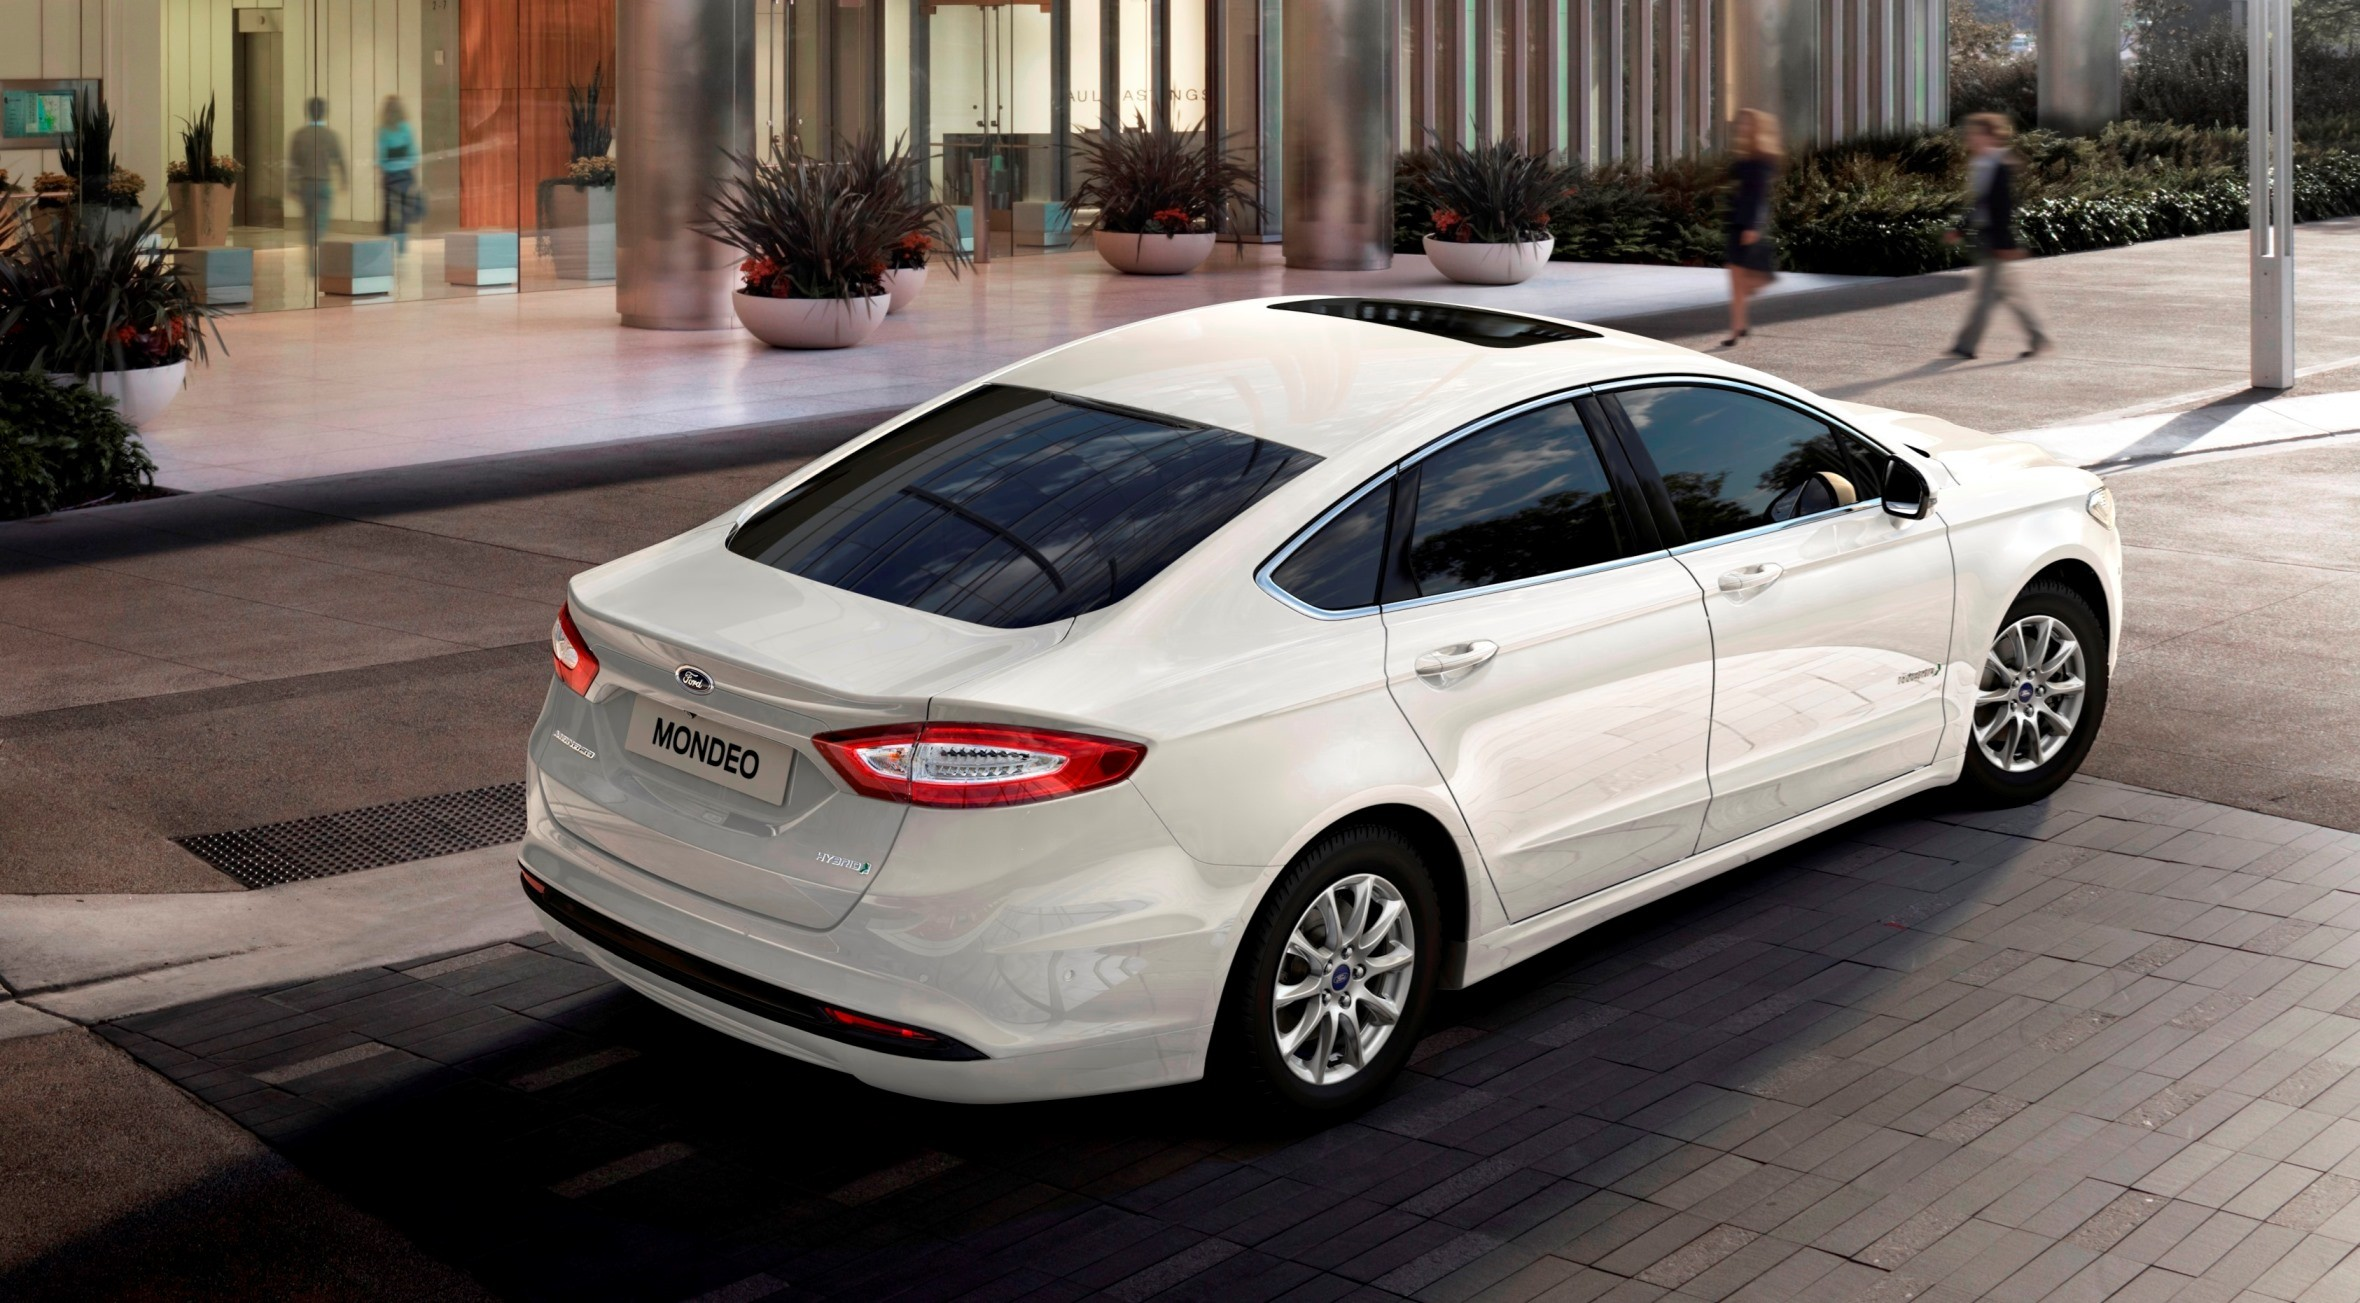 2015 ford mondeo brings new led headlights redesigned. Black Bedroom Furniture Sets. Home Design Ideas